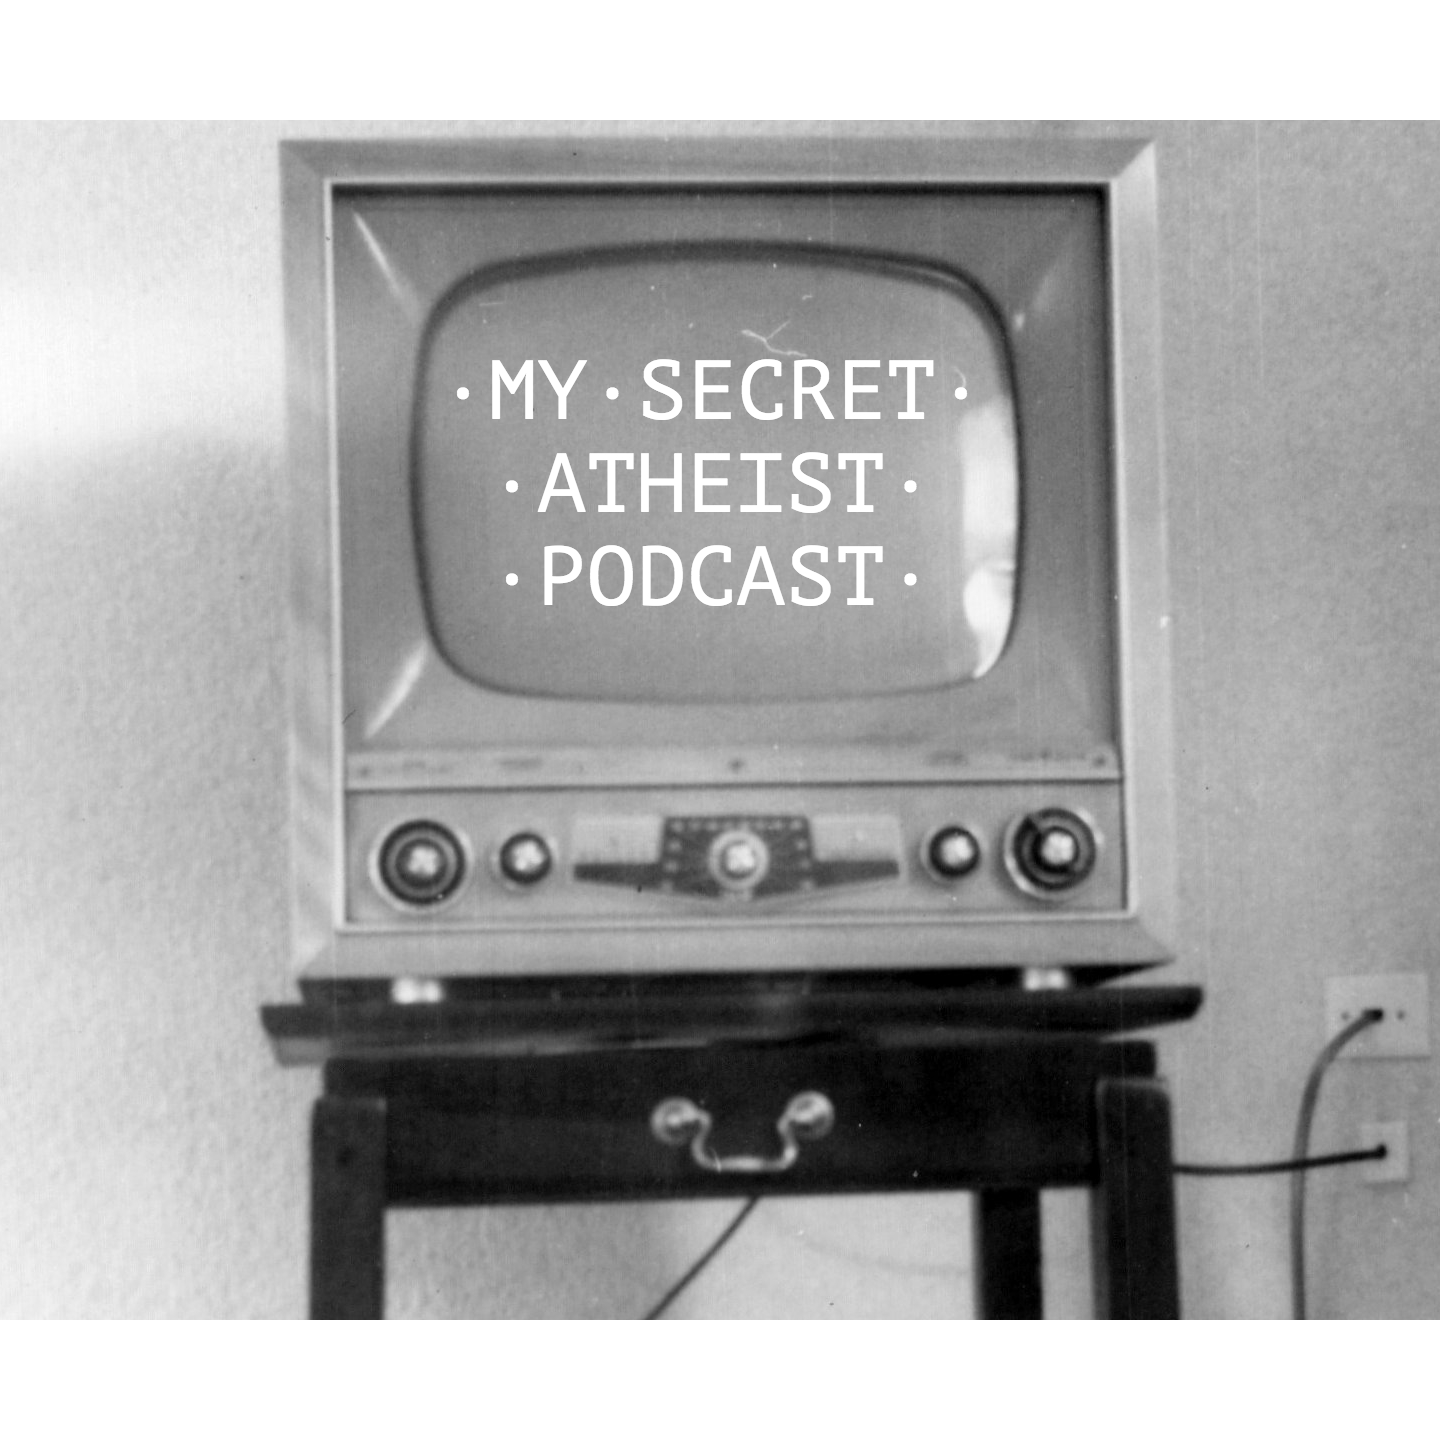 My Secret Atheist Podcast